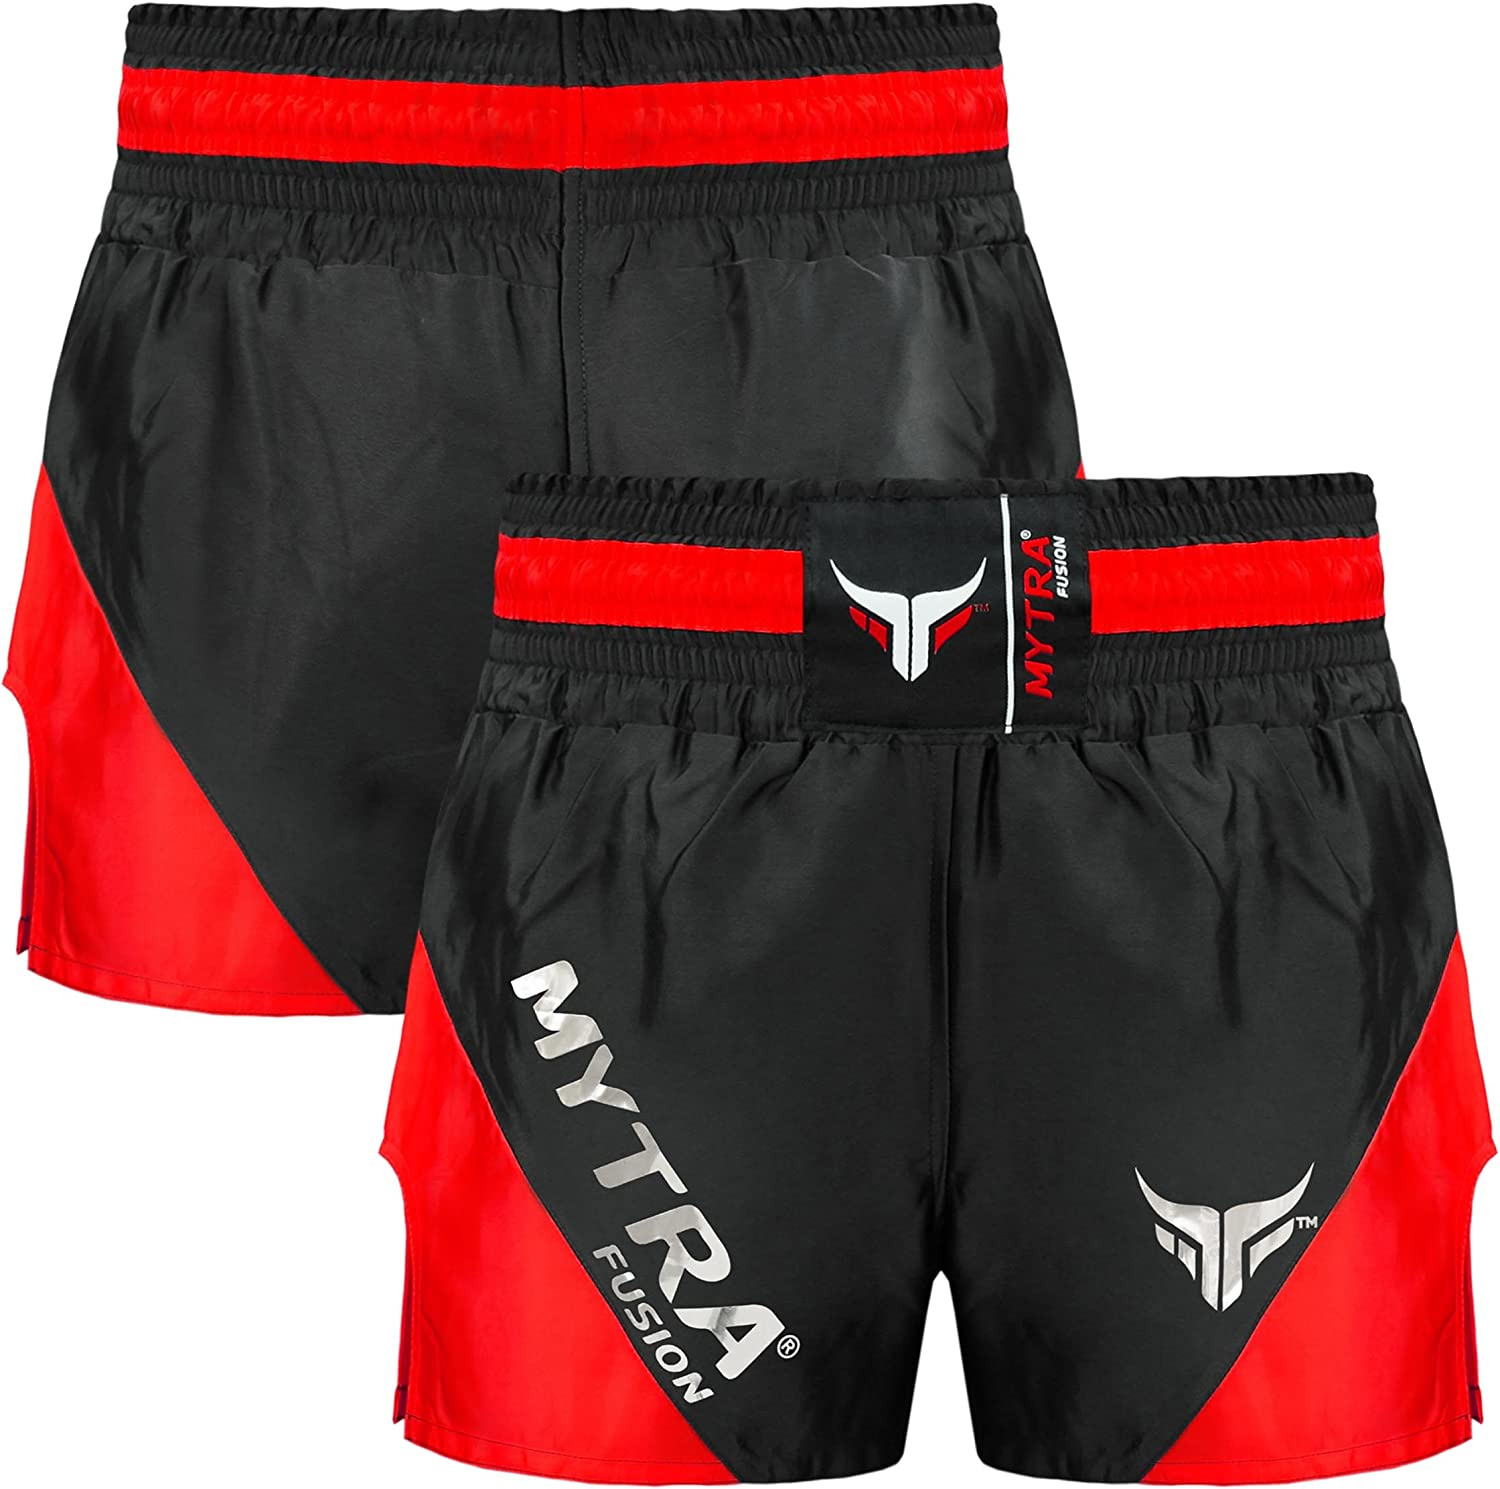 Mytra Fusion Pro Boxing Shorts Combat Shorts for Boxing and MMA